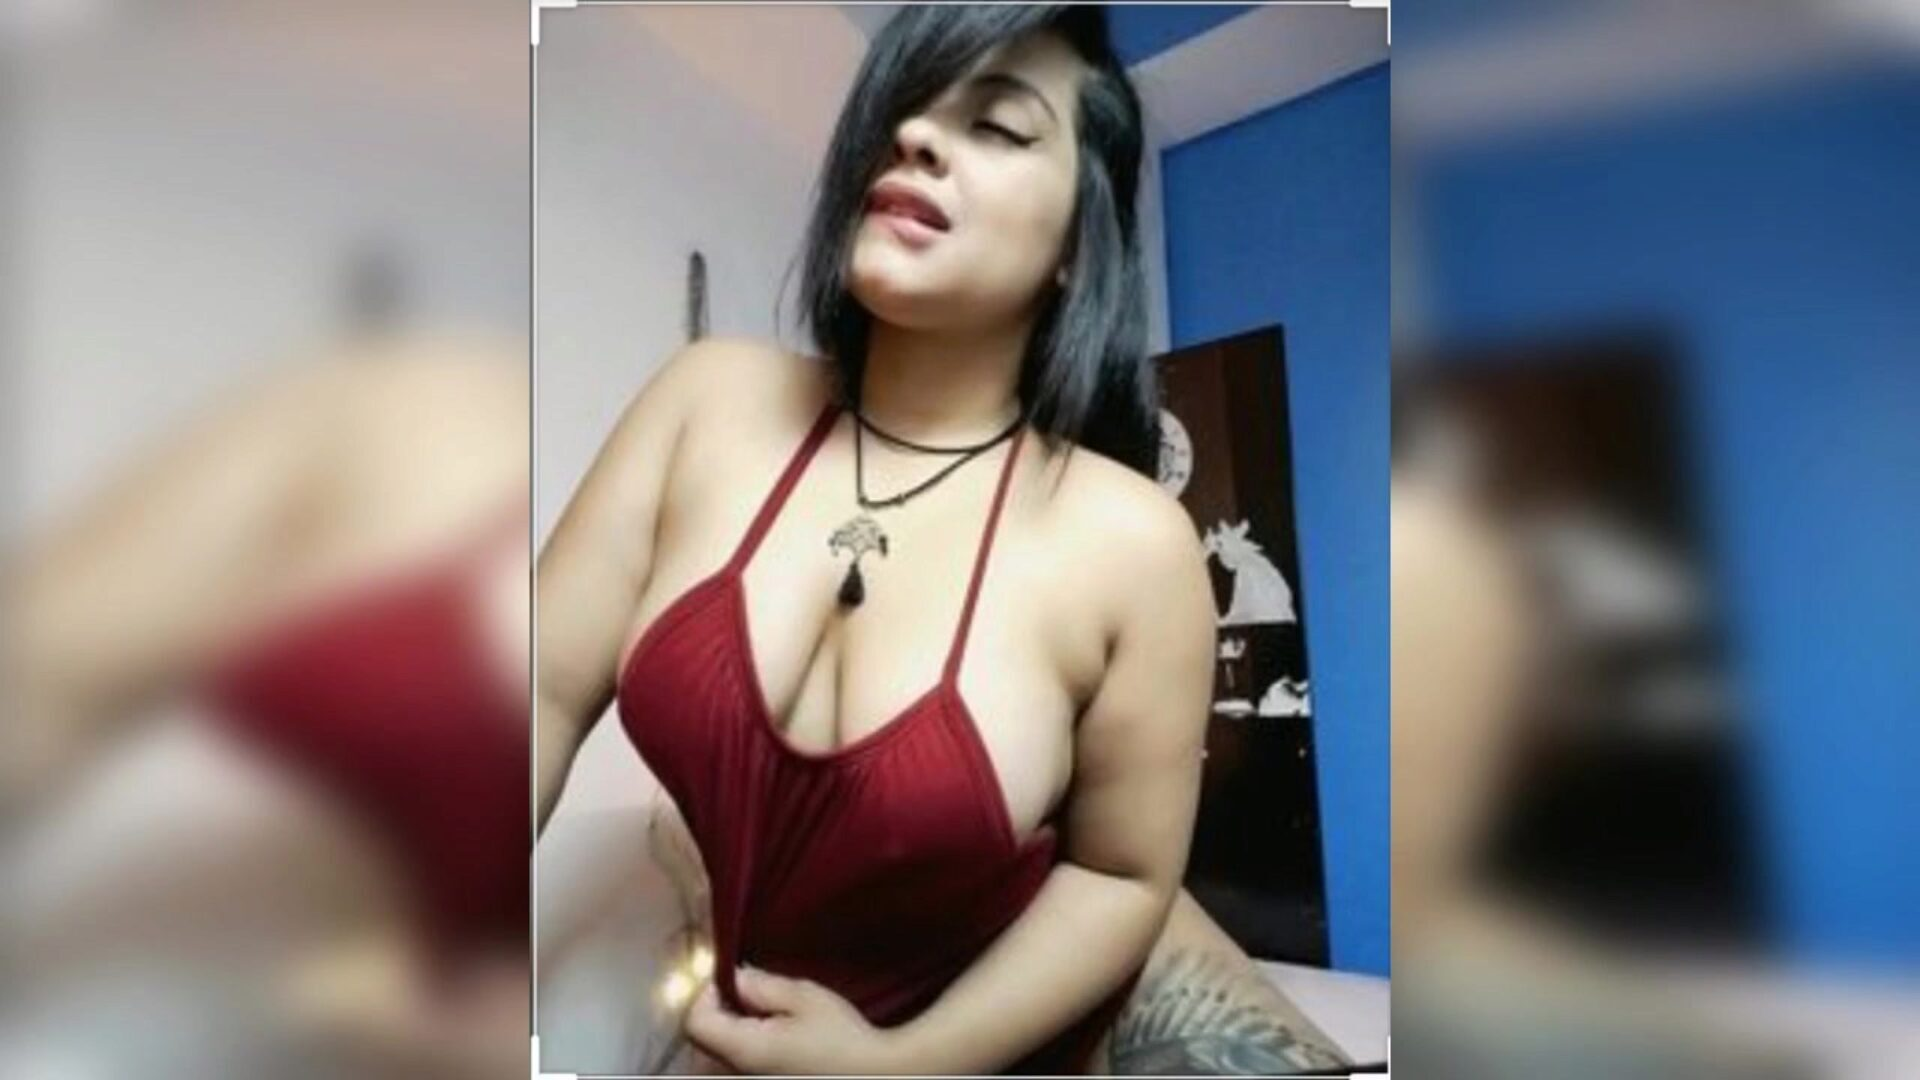 Neha seducing her step step-brother into fucking her( Hindi Audio Story)